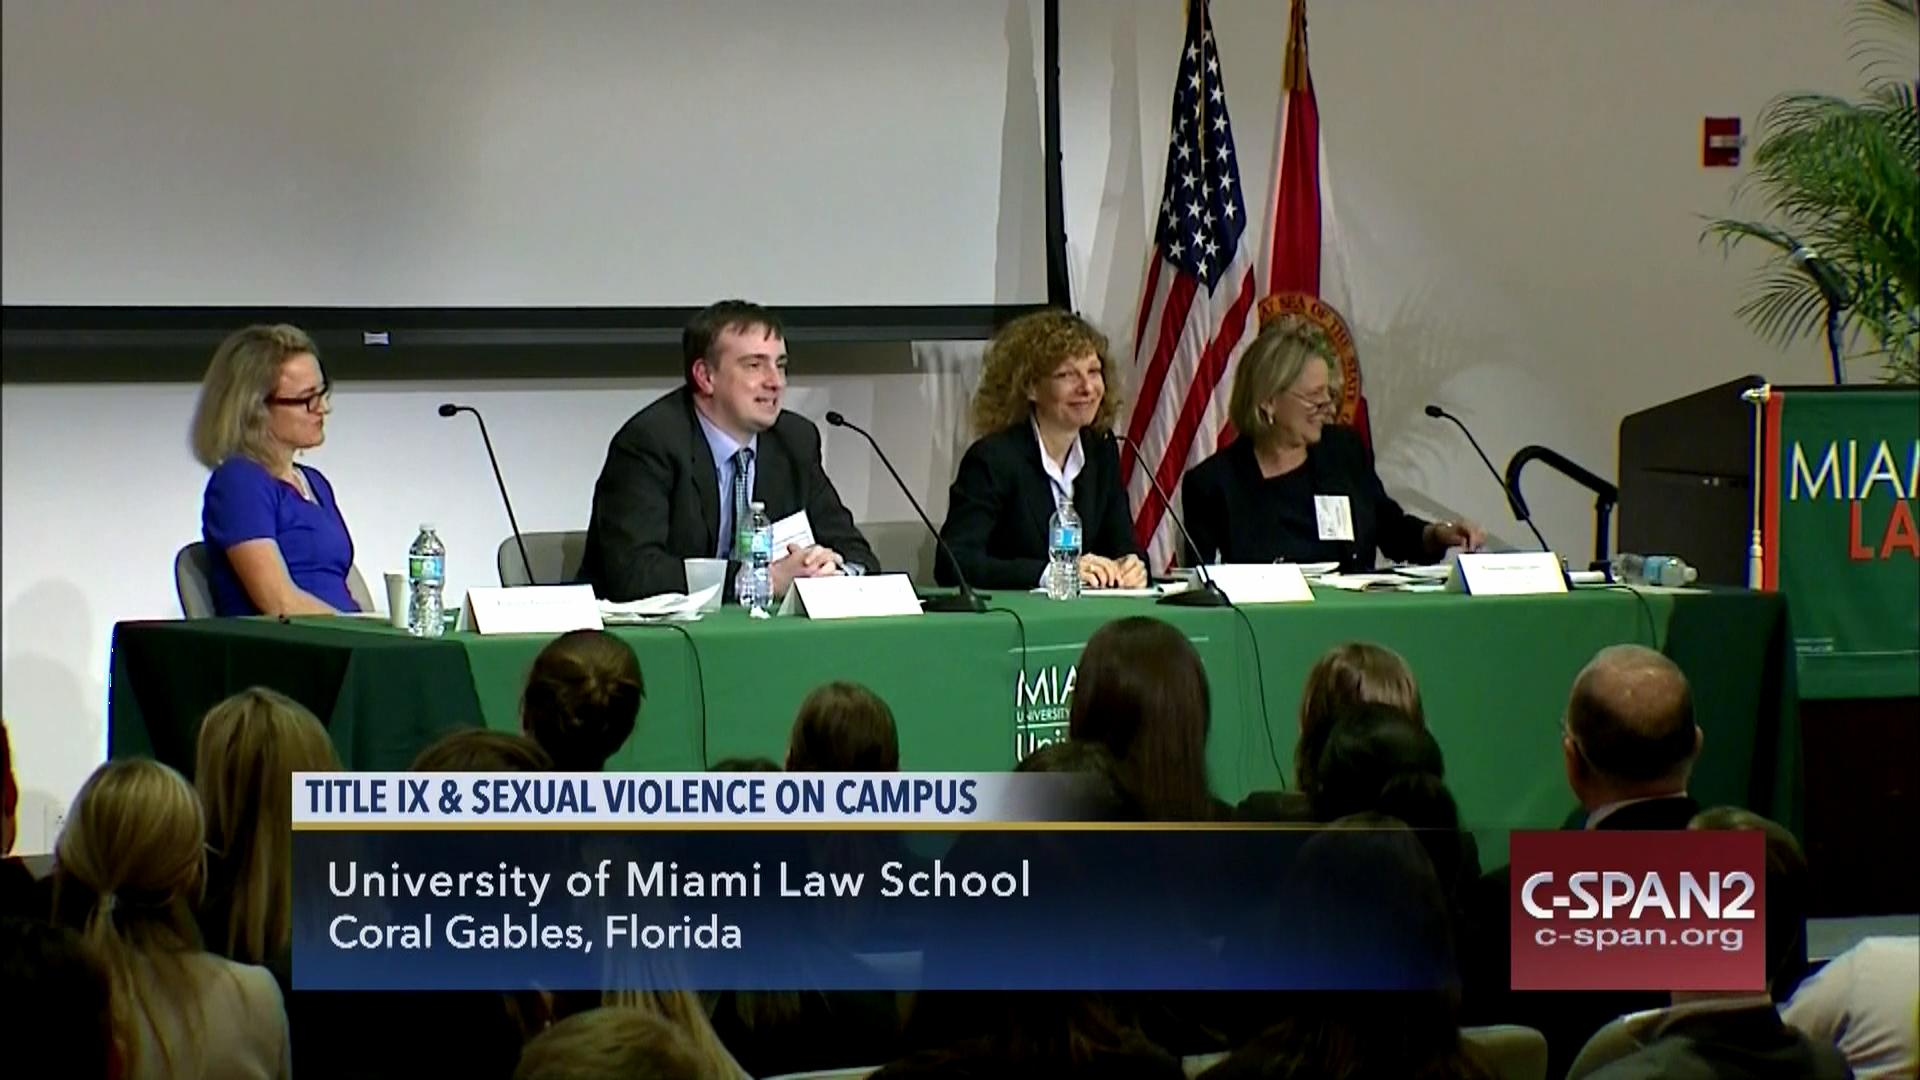 Title ix campus sexual violence feb 5 2016 video c span mitanshu Gallery